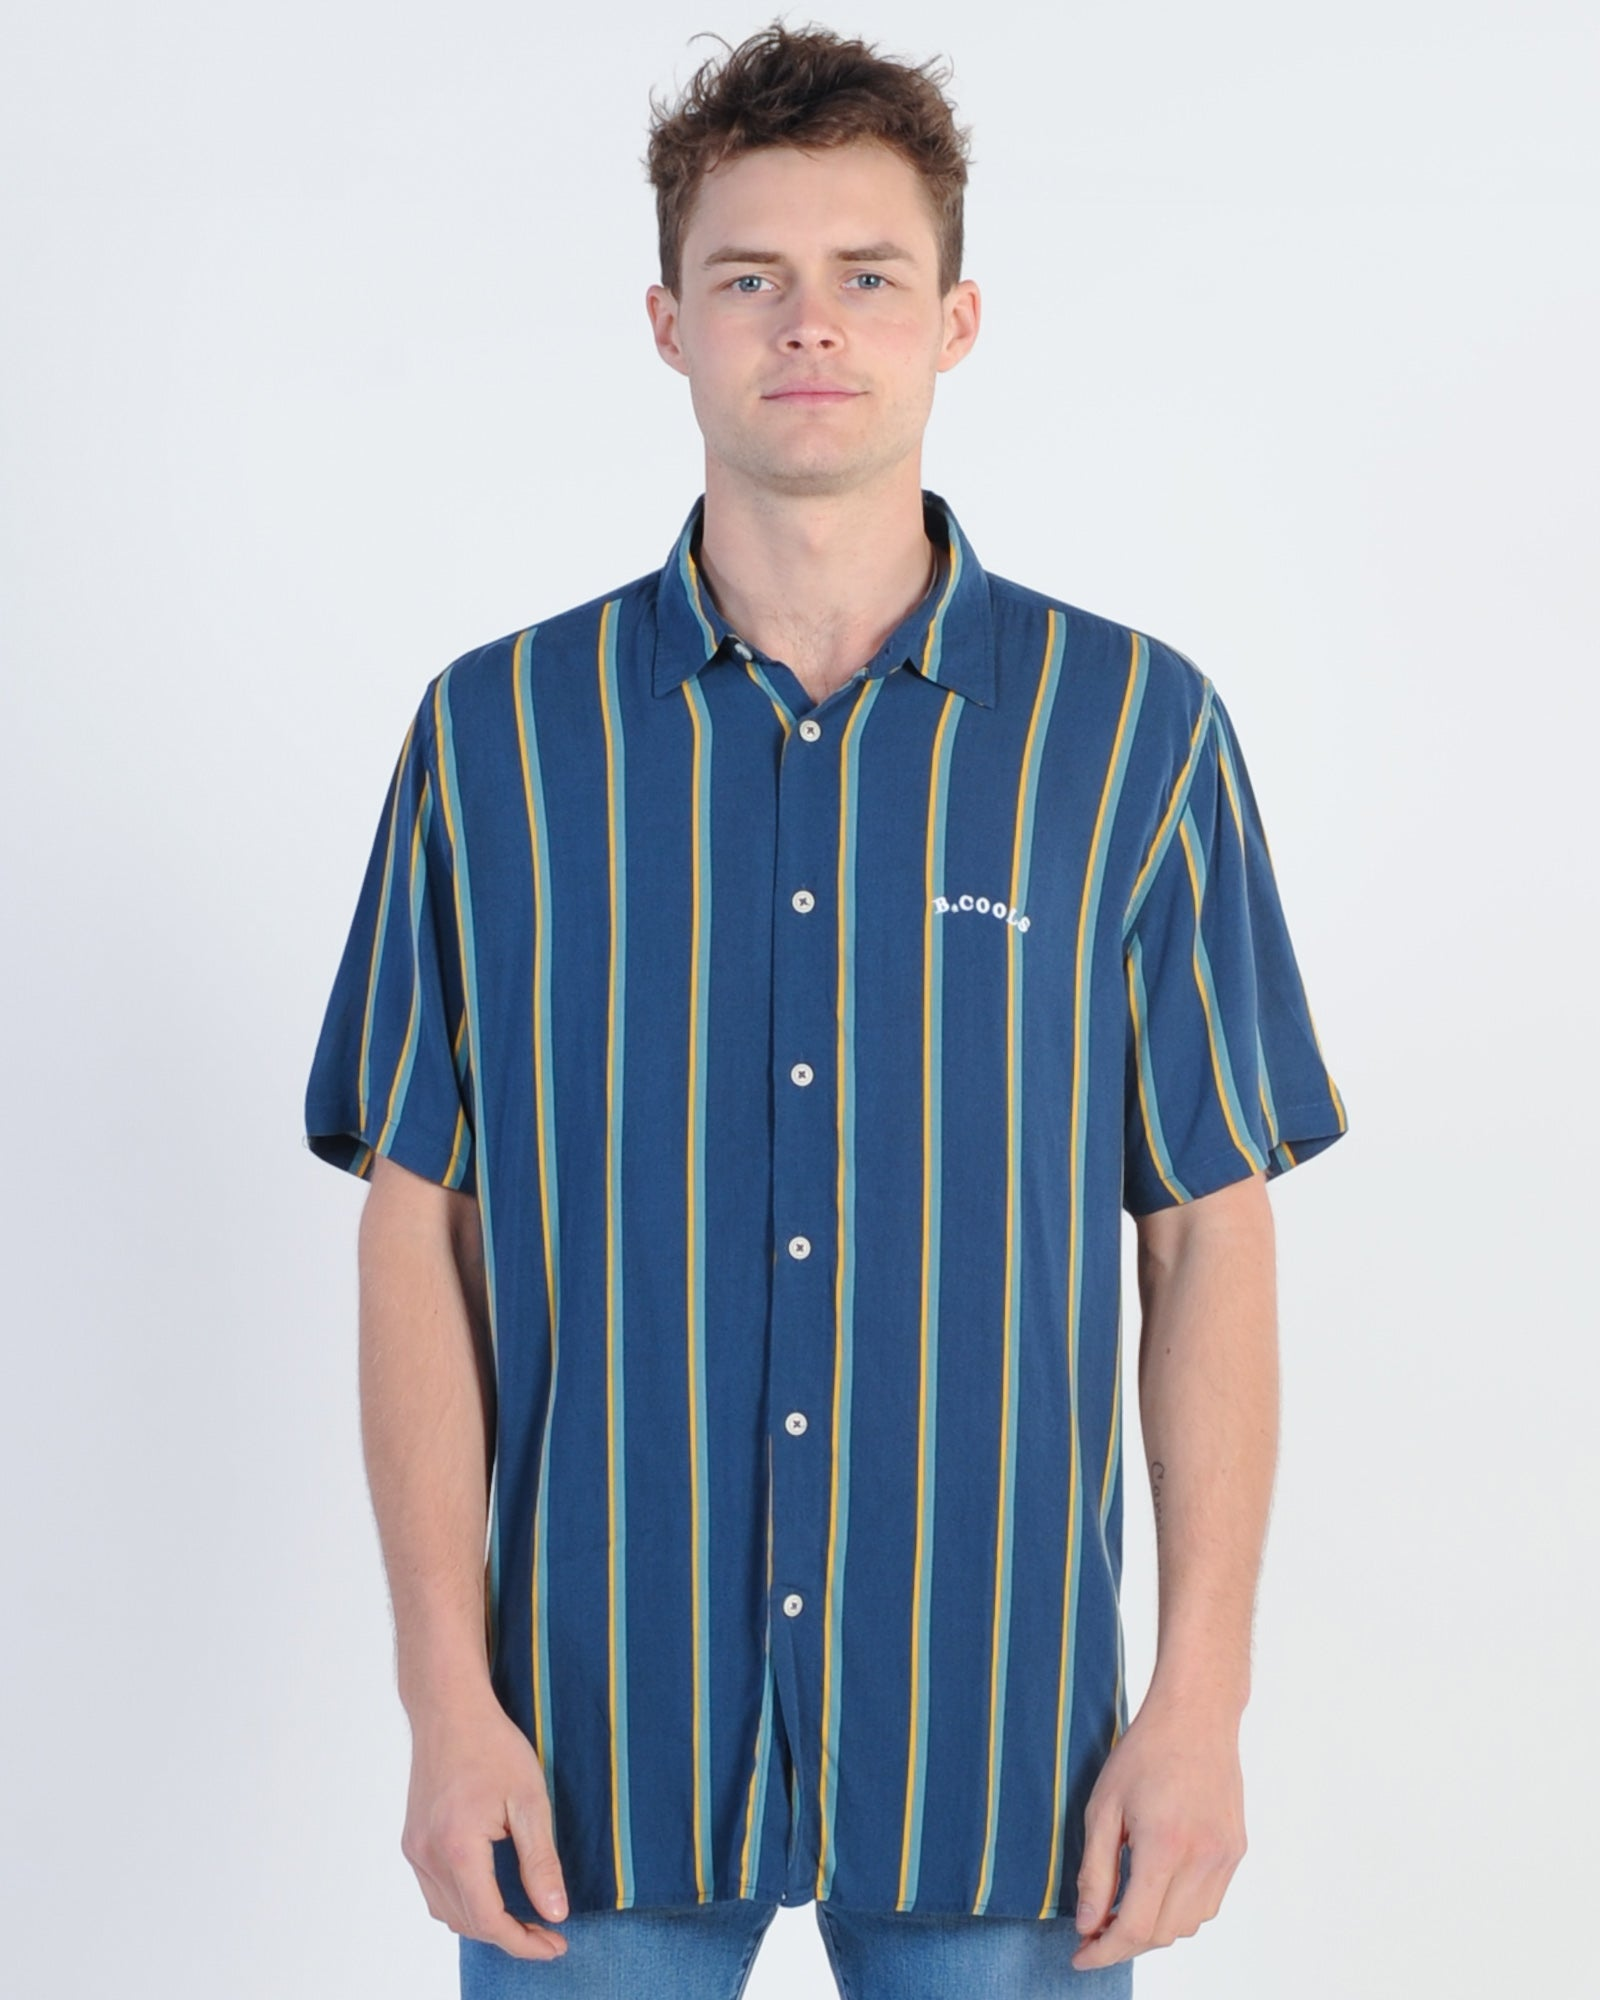 Barney Cools Holiday Vert Stripe S/S Shirt - Navy